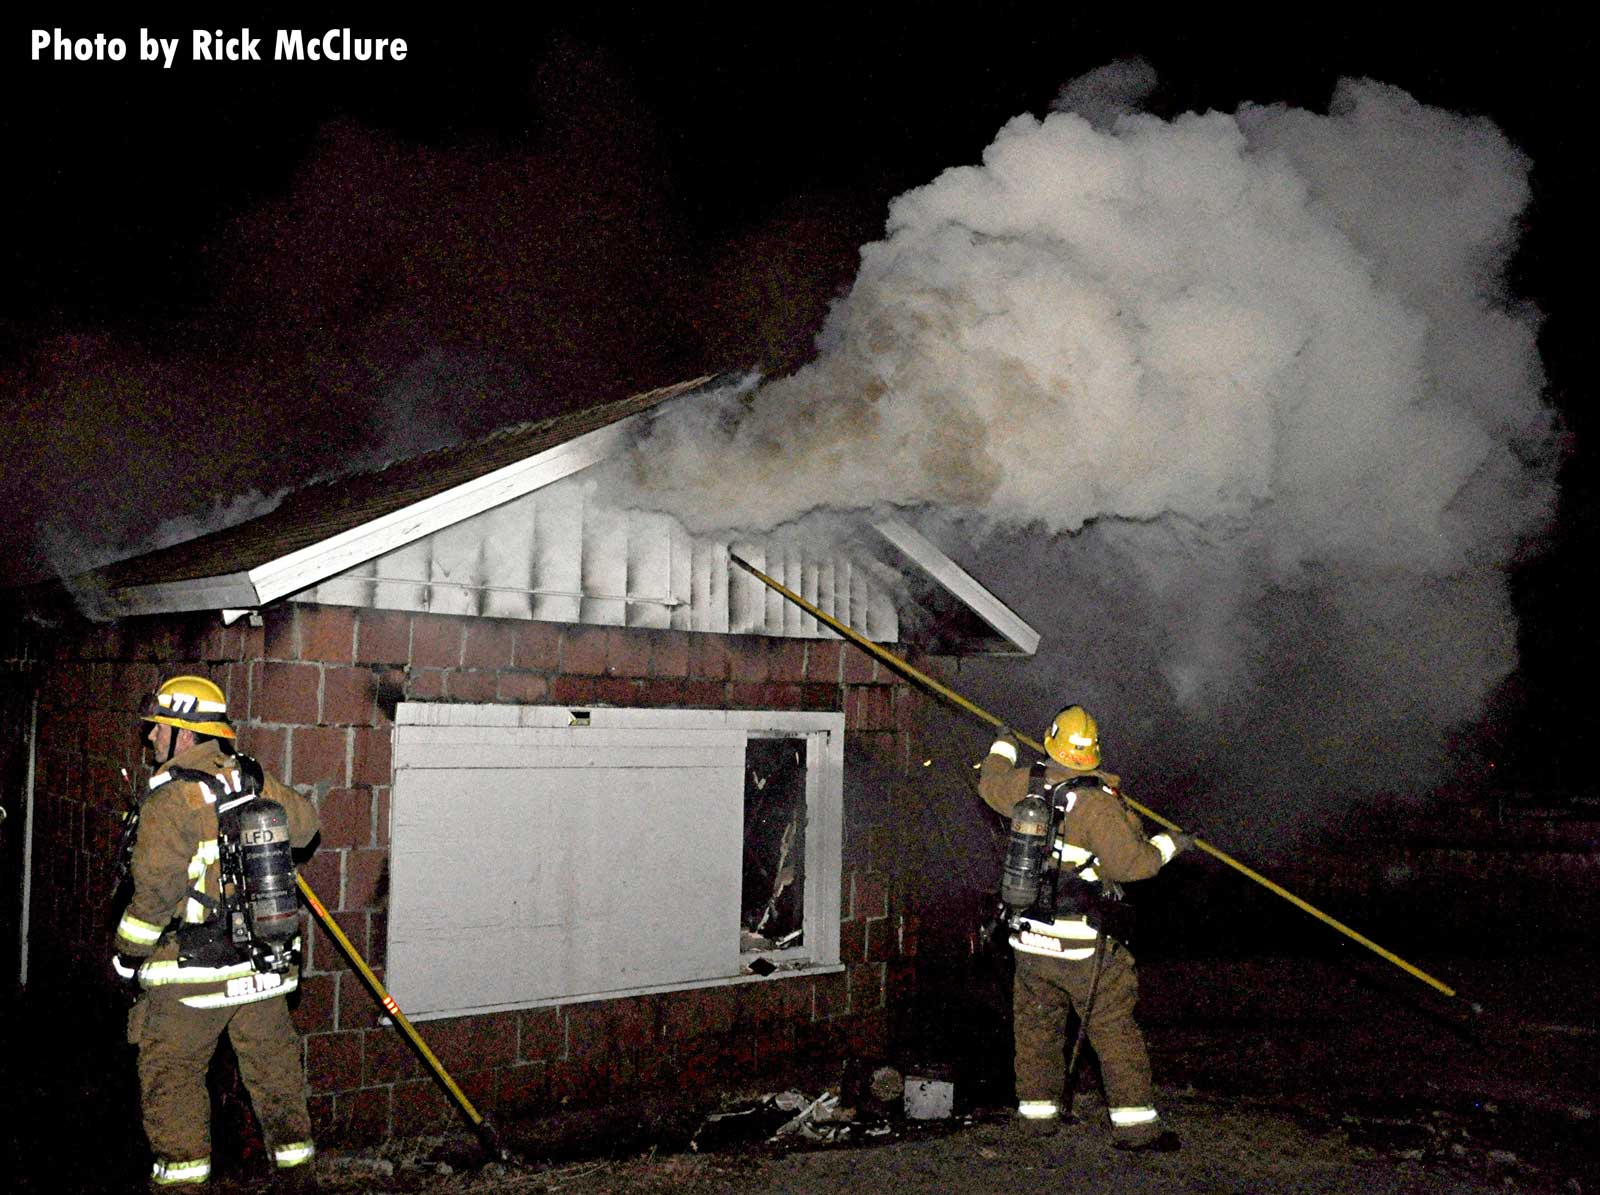 A firefighter uses a hook to open up on the outside of a building as smoke pumps out of the structure